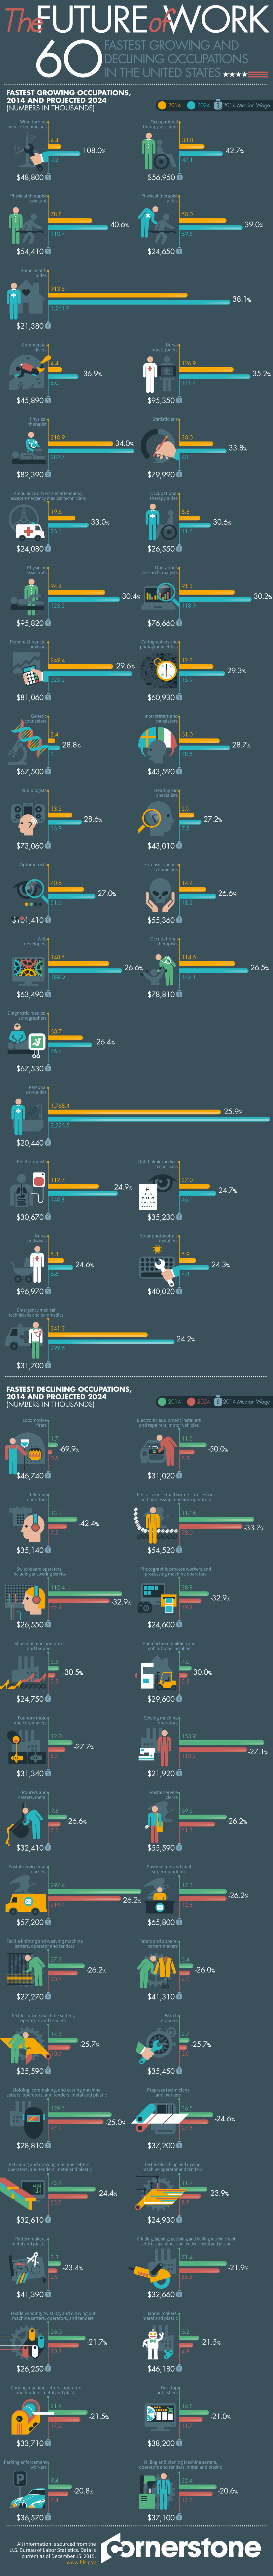 The Future of Work: 60 Fastest Growing and Declining Occupations in the United States #Infographic